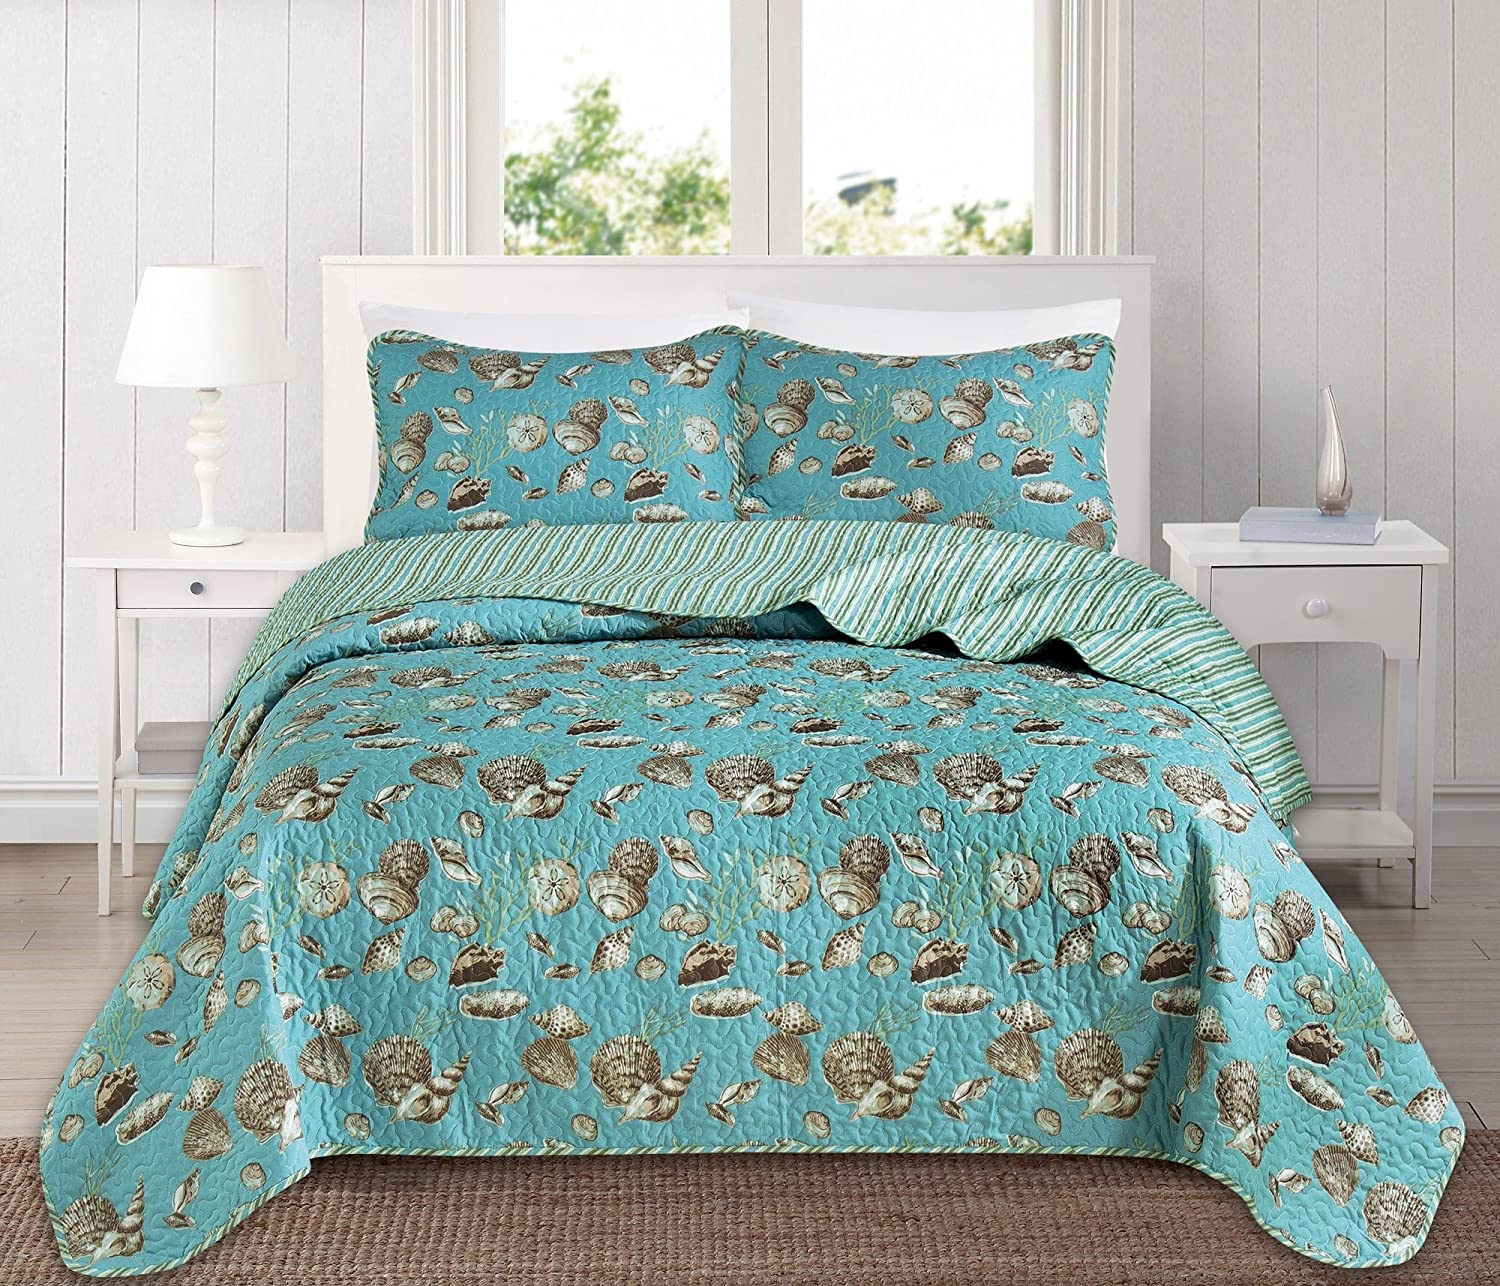 Great Bay Home 3 Piece Quilt Set with Shams. Soft All-Season Microfiber Bedspread Featuring Attractive Seascape Images. The Seychelles Collection Brand. (King)